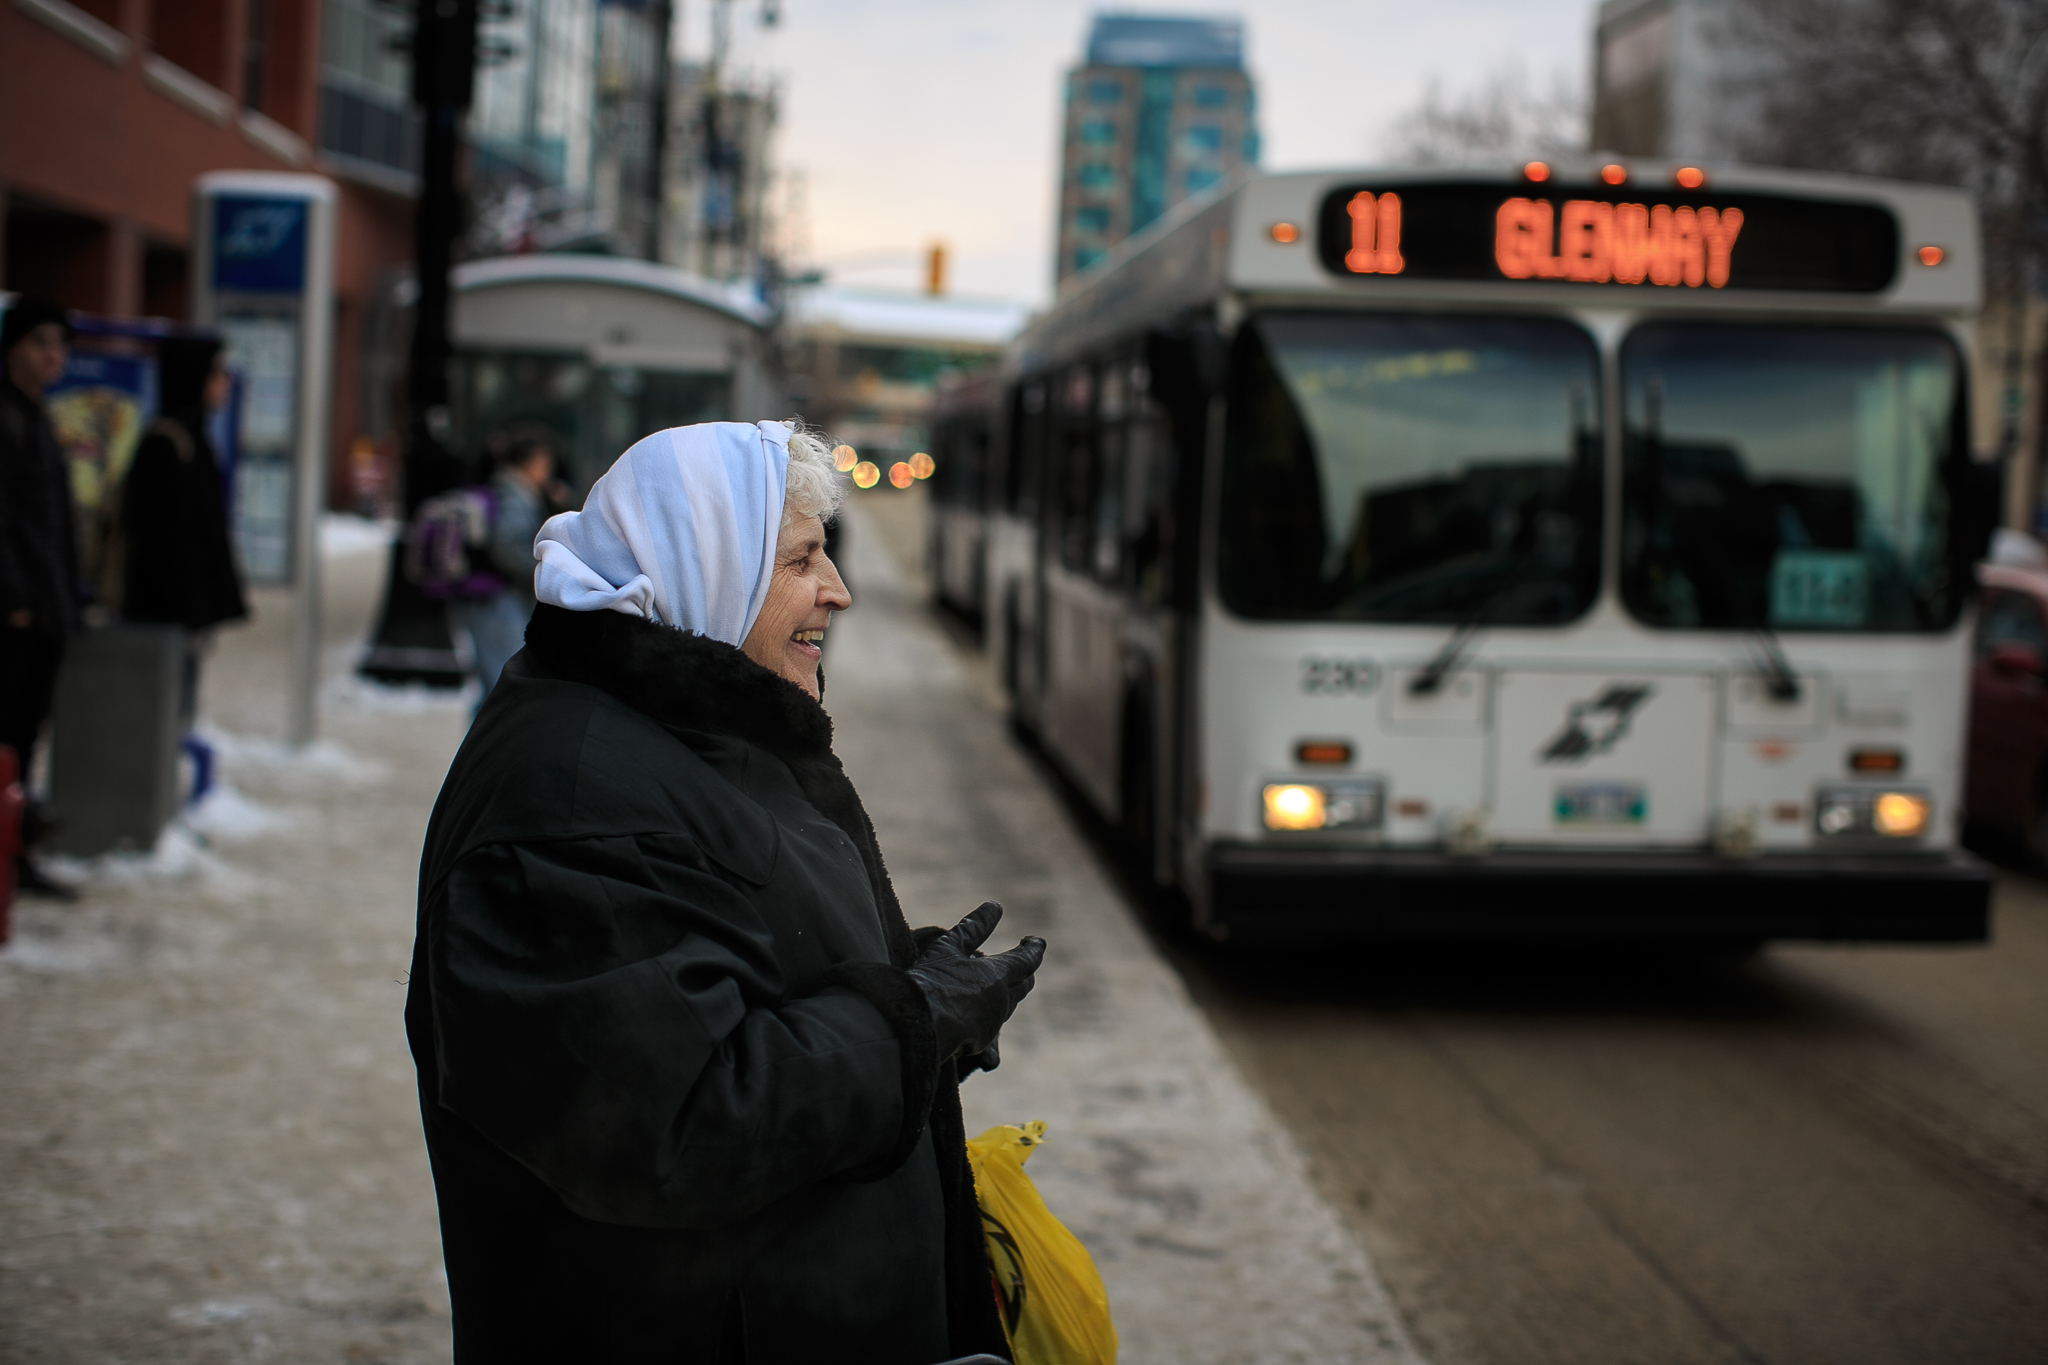 Polly about to catch her bus on Portage Avenue. Day 42. (MELISSA TAIT / WINNIPEG FREE PRESS)